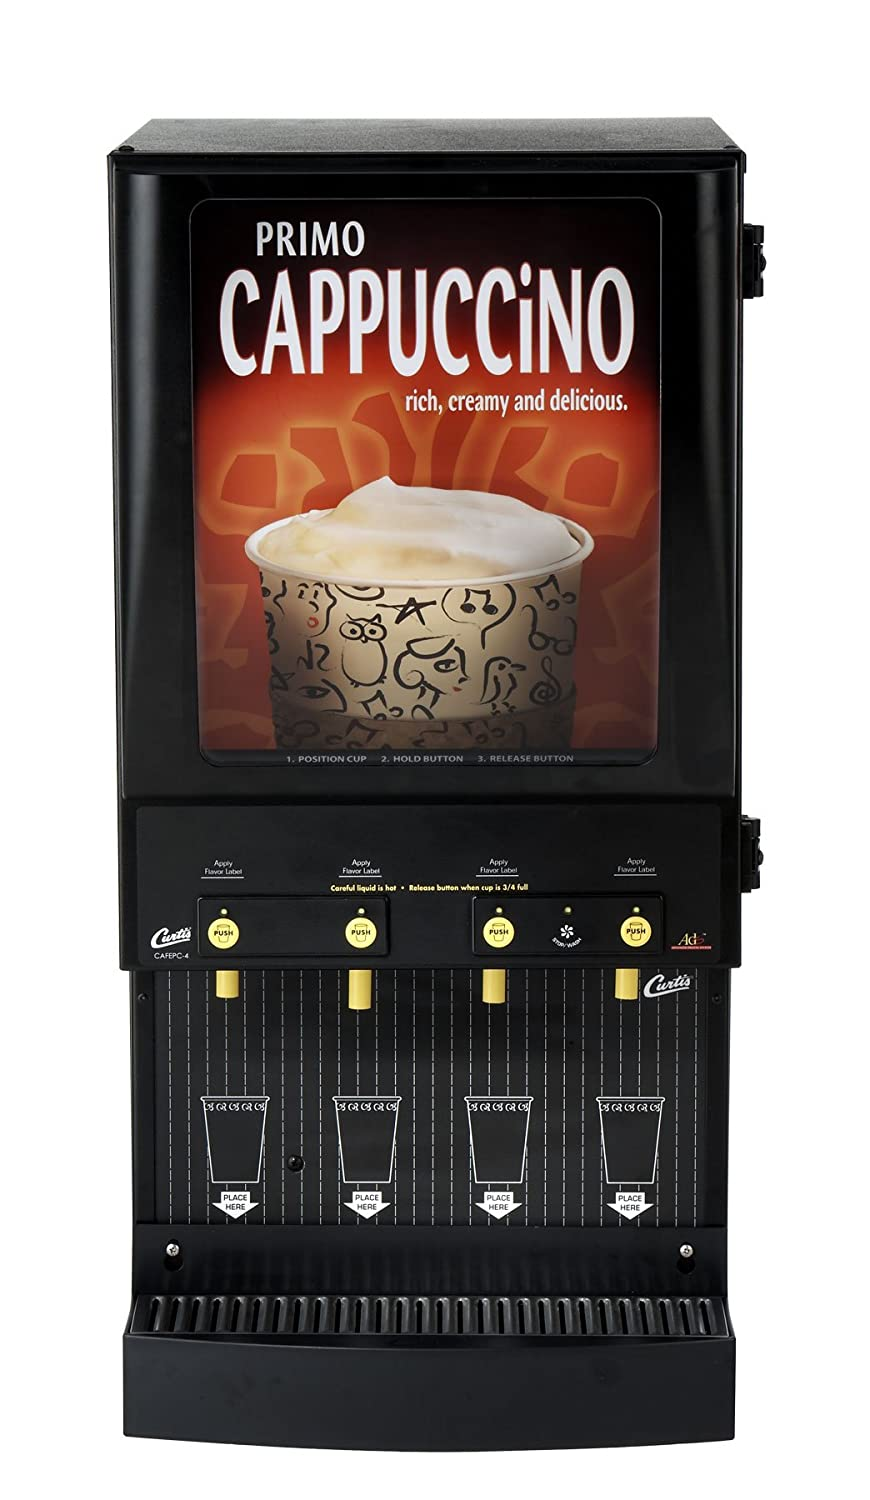 Wilbur Curtis Café Primo Cappuccino with Lightbox 4 Station Cappuccino (4 Lb Hoppers) - Commercial Cappuccino Machine - CAFEPC4CL10000 (Each)